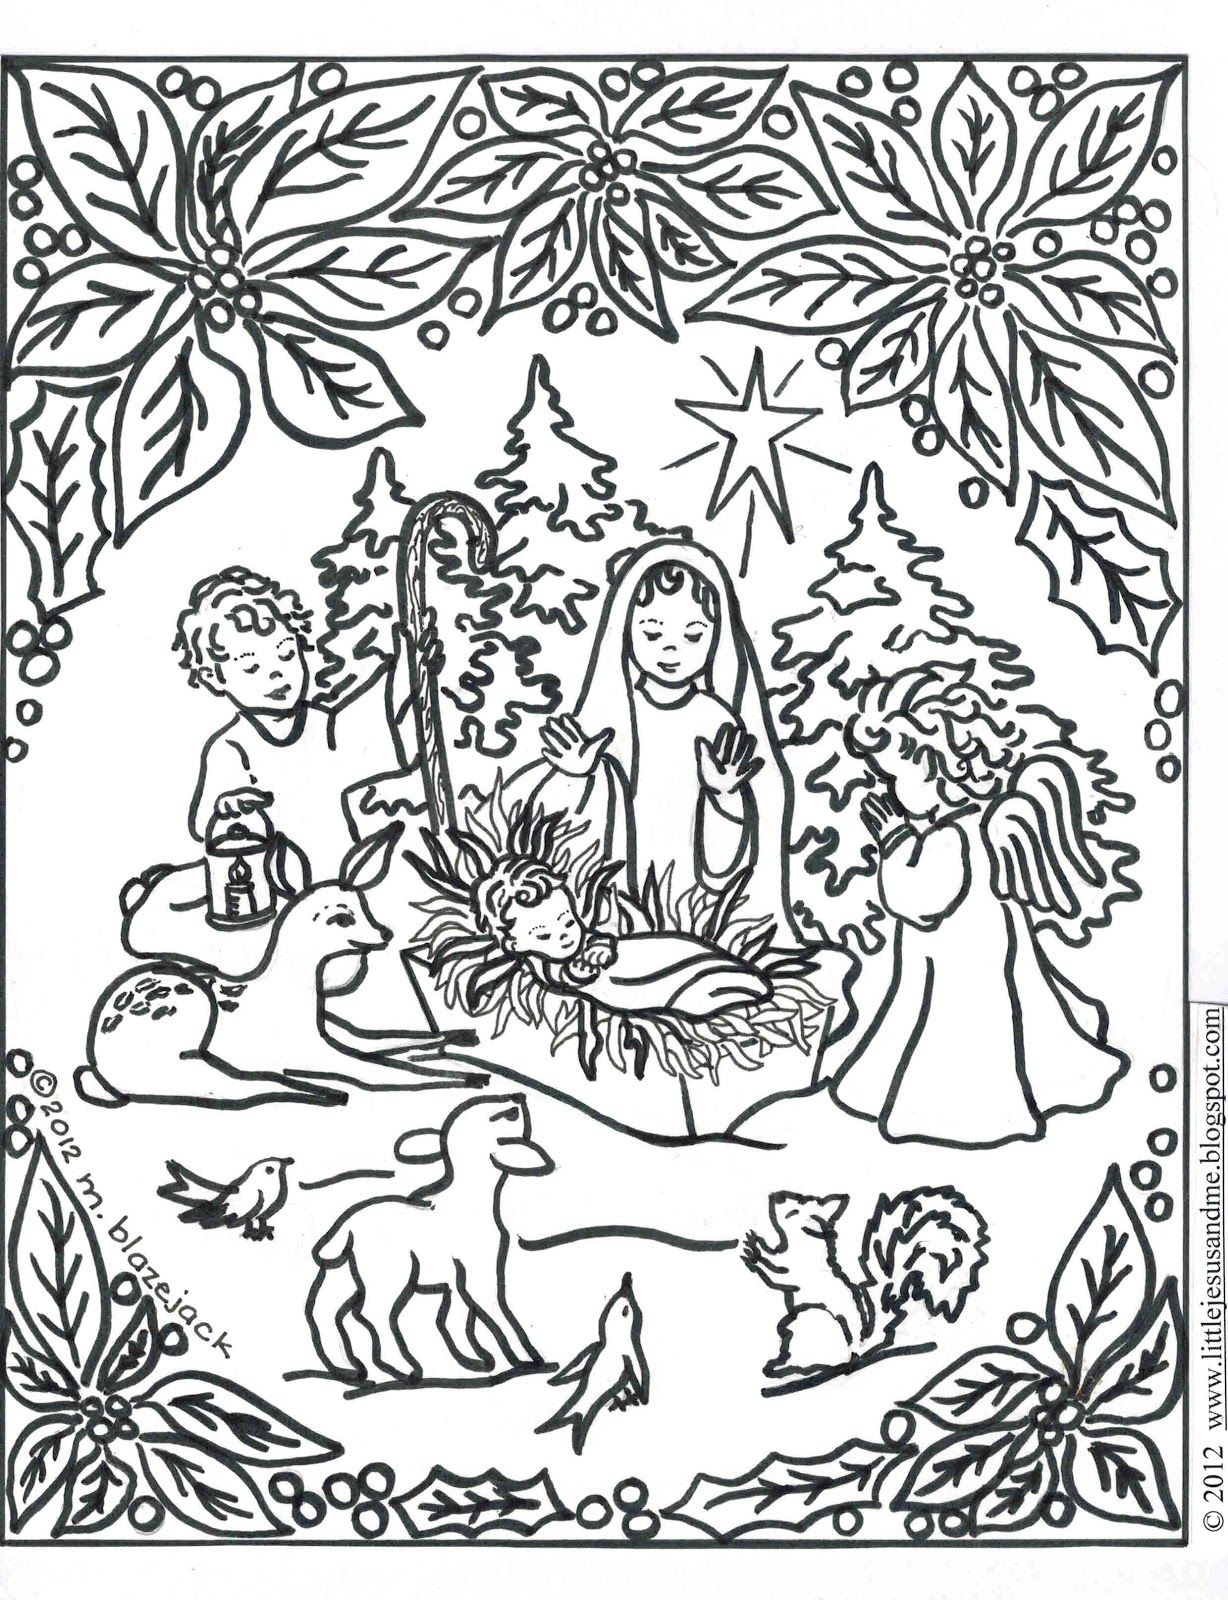 Jesus and Nativity Coloring Page | Catholic Crafts & Coloring ...